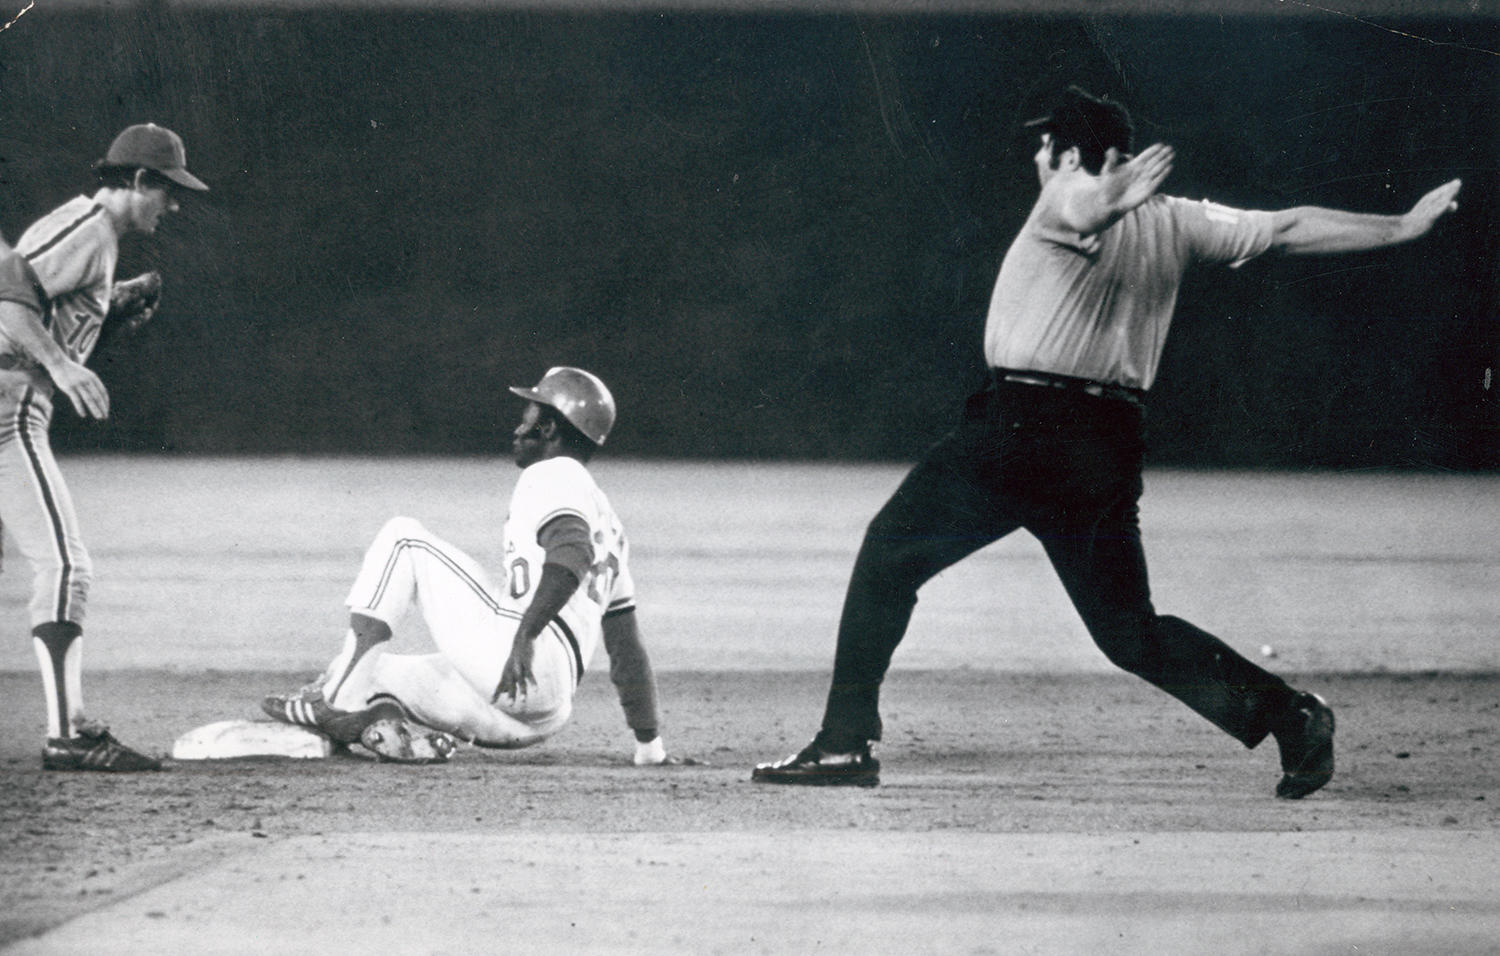 Lou Brock would finish his 19-year-long career with 938 stolen bases -- a major league record at the time. (National Baseball Hall of Fame and Museum)